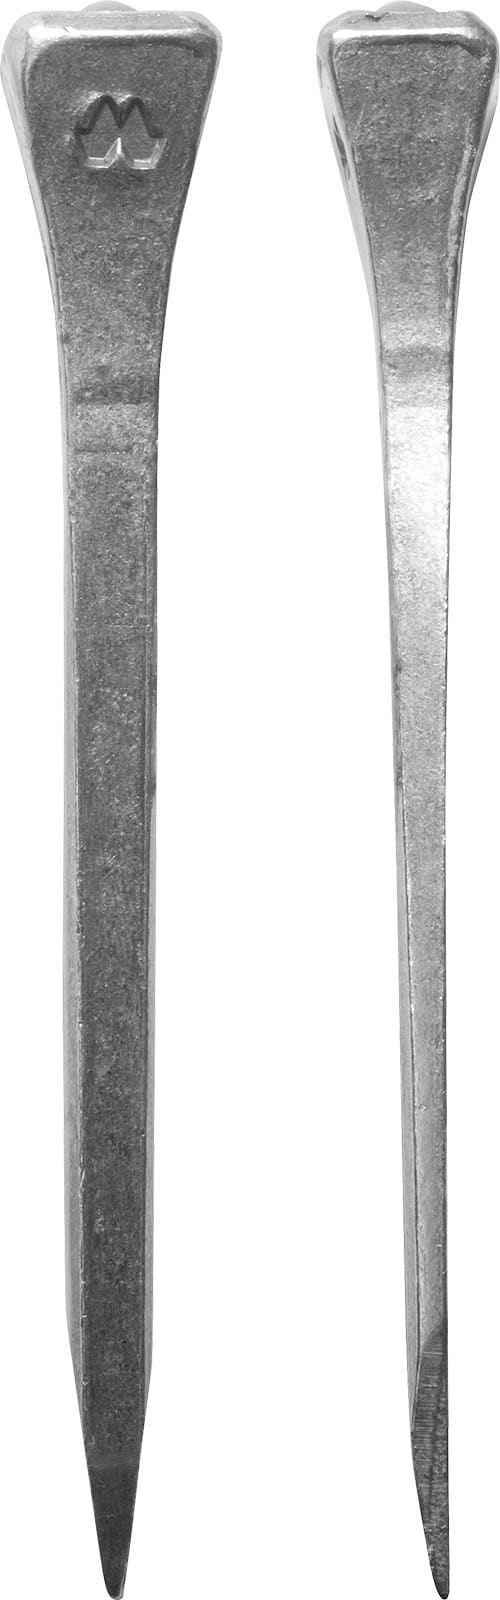 Mustad Road Nail E, front and side views